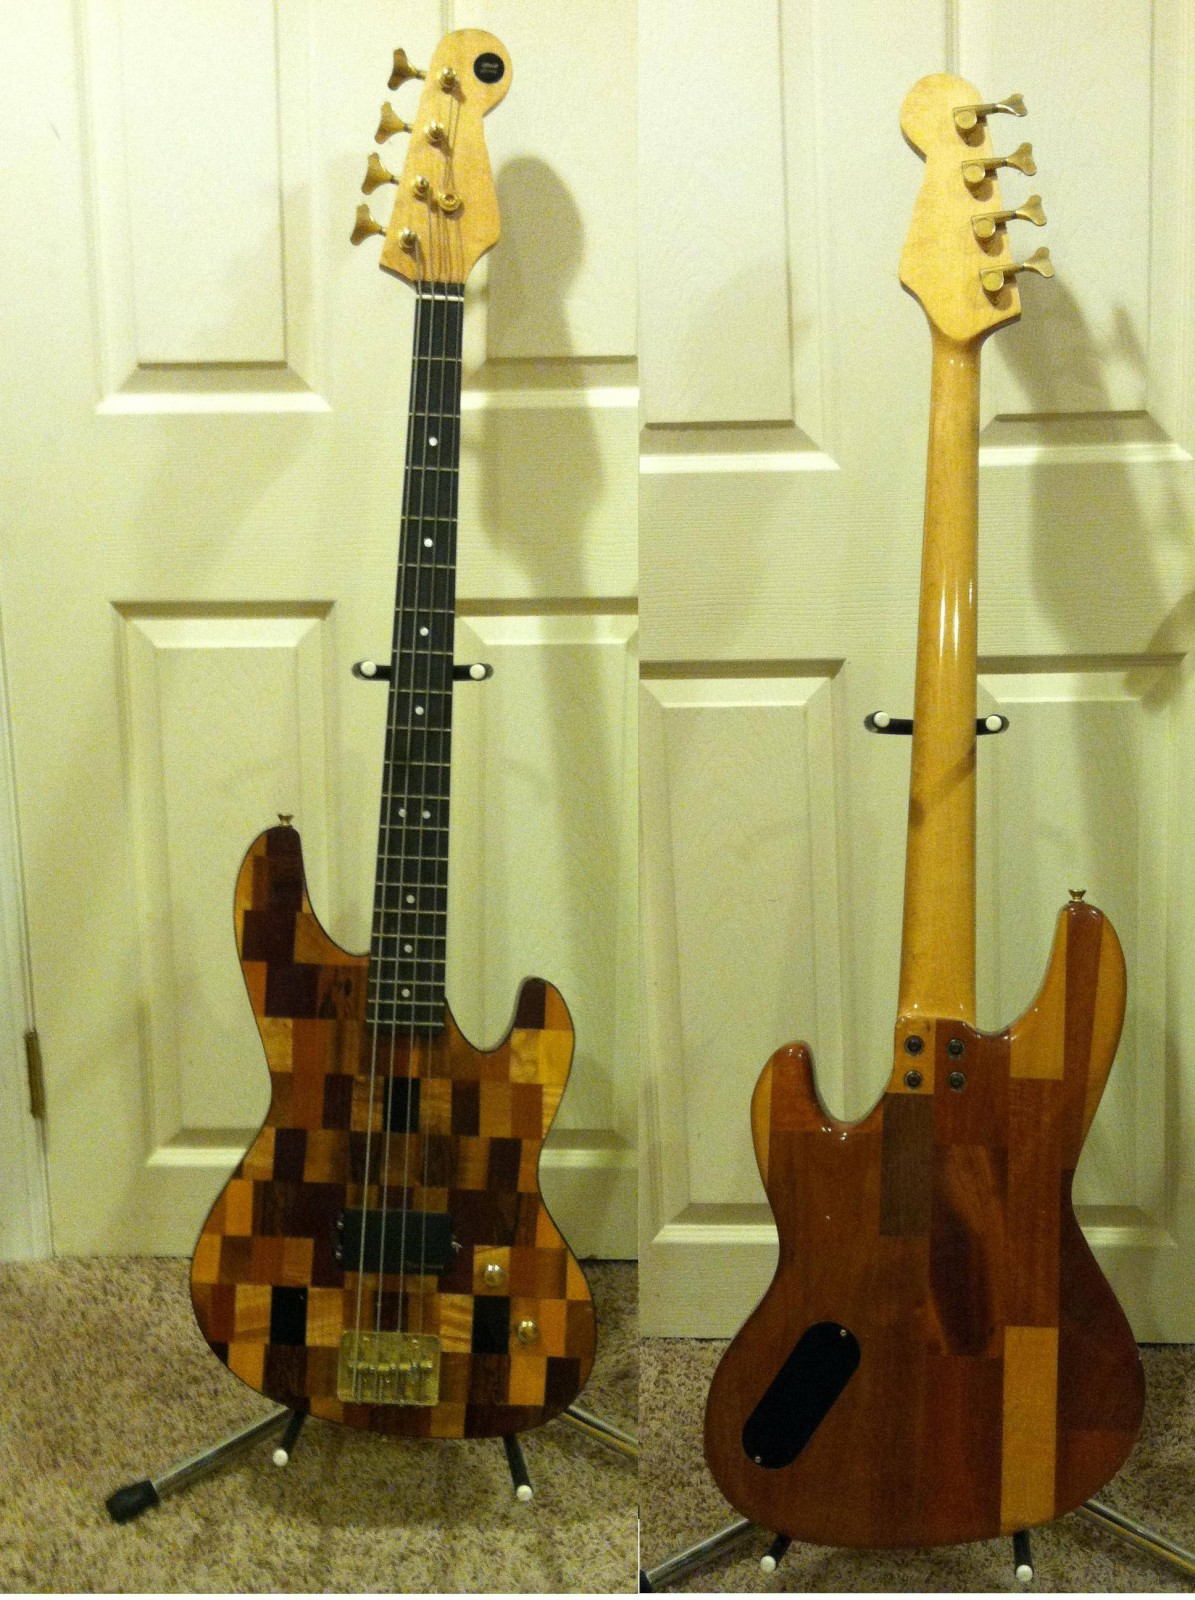 amazing_bass_guitar_made_fom_the_scraps_of_old_guitars-1195x1600